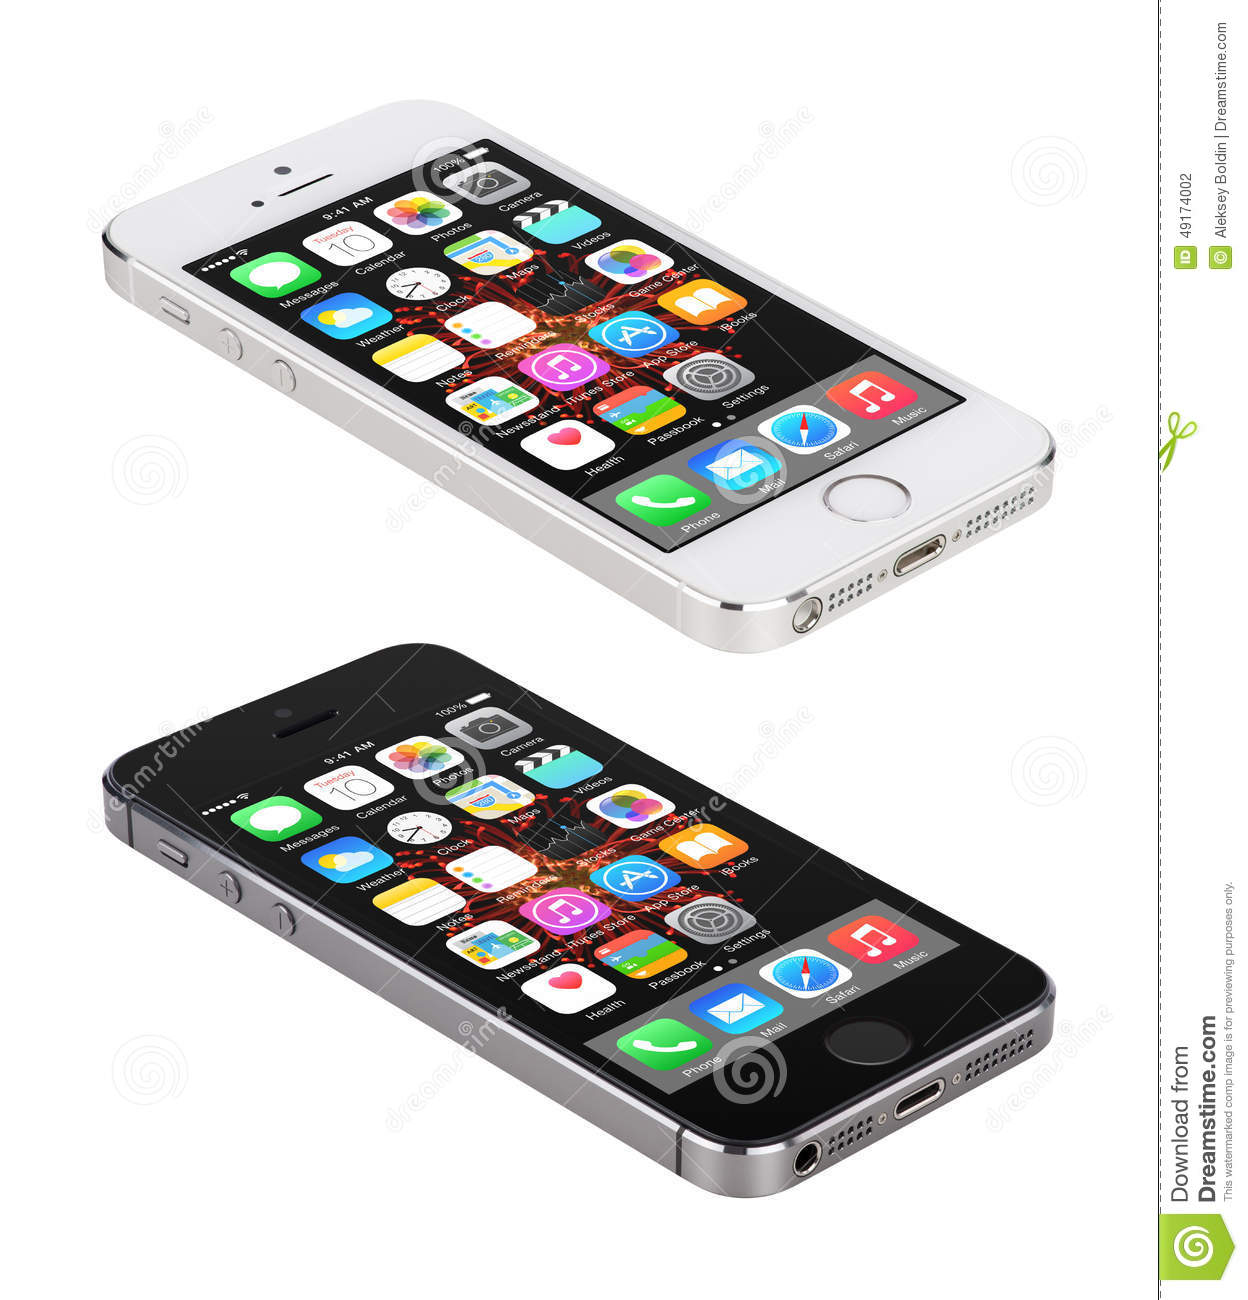 iphone 5s space gray apple space gray and silver iphone 5s displaying ios 8 14869